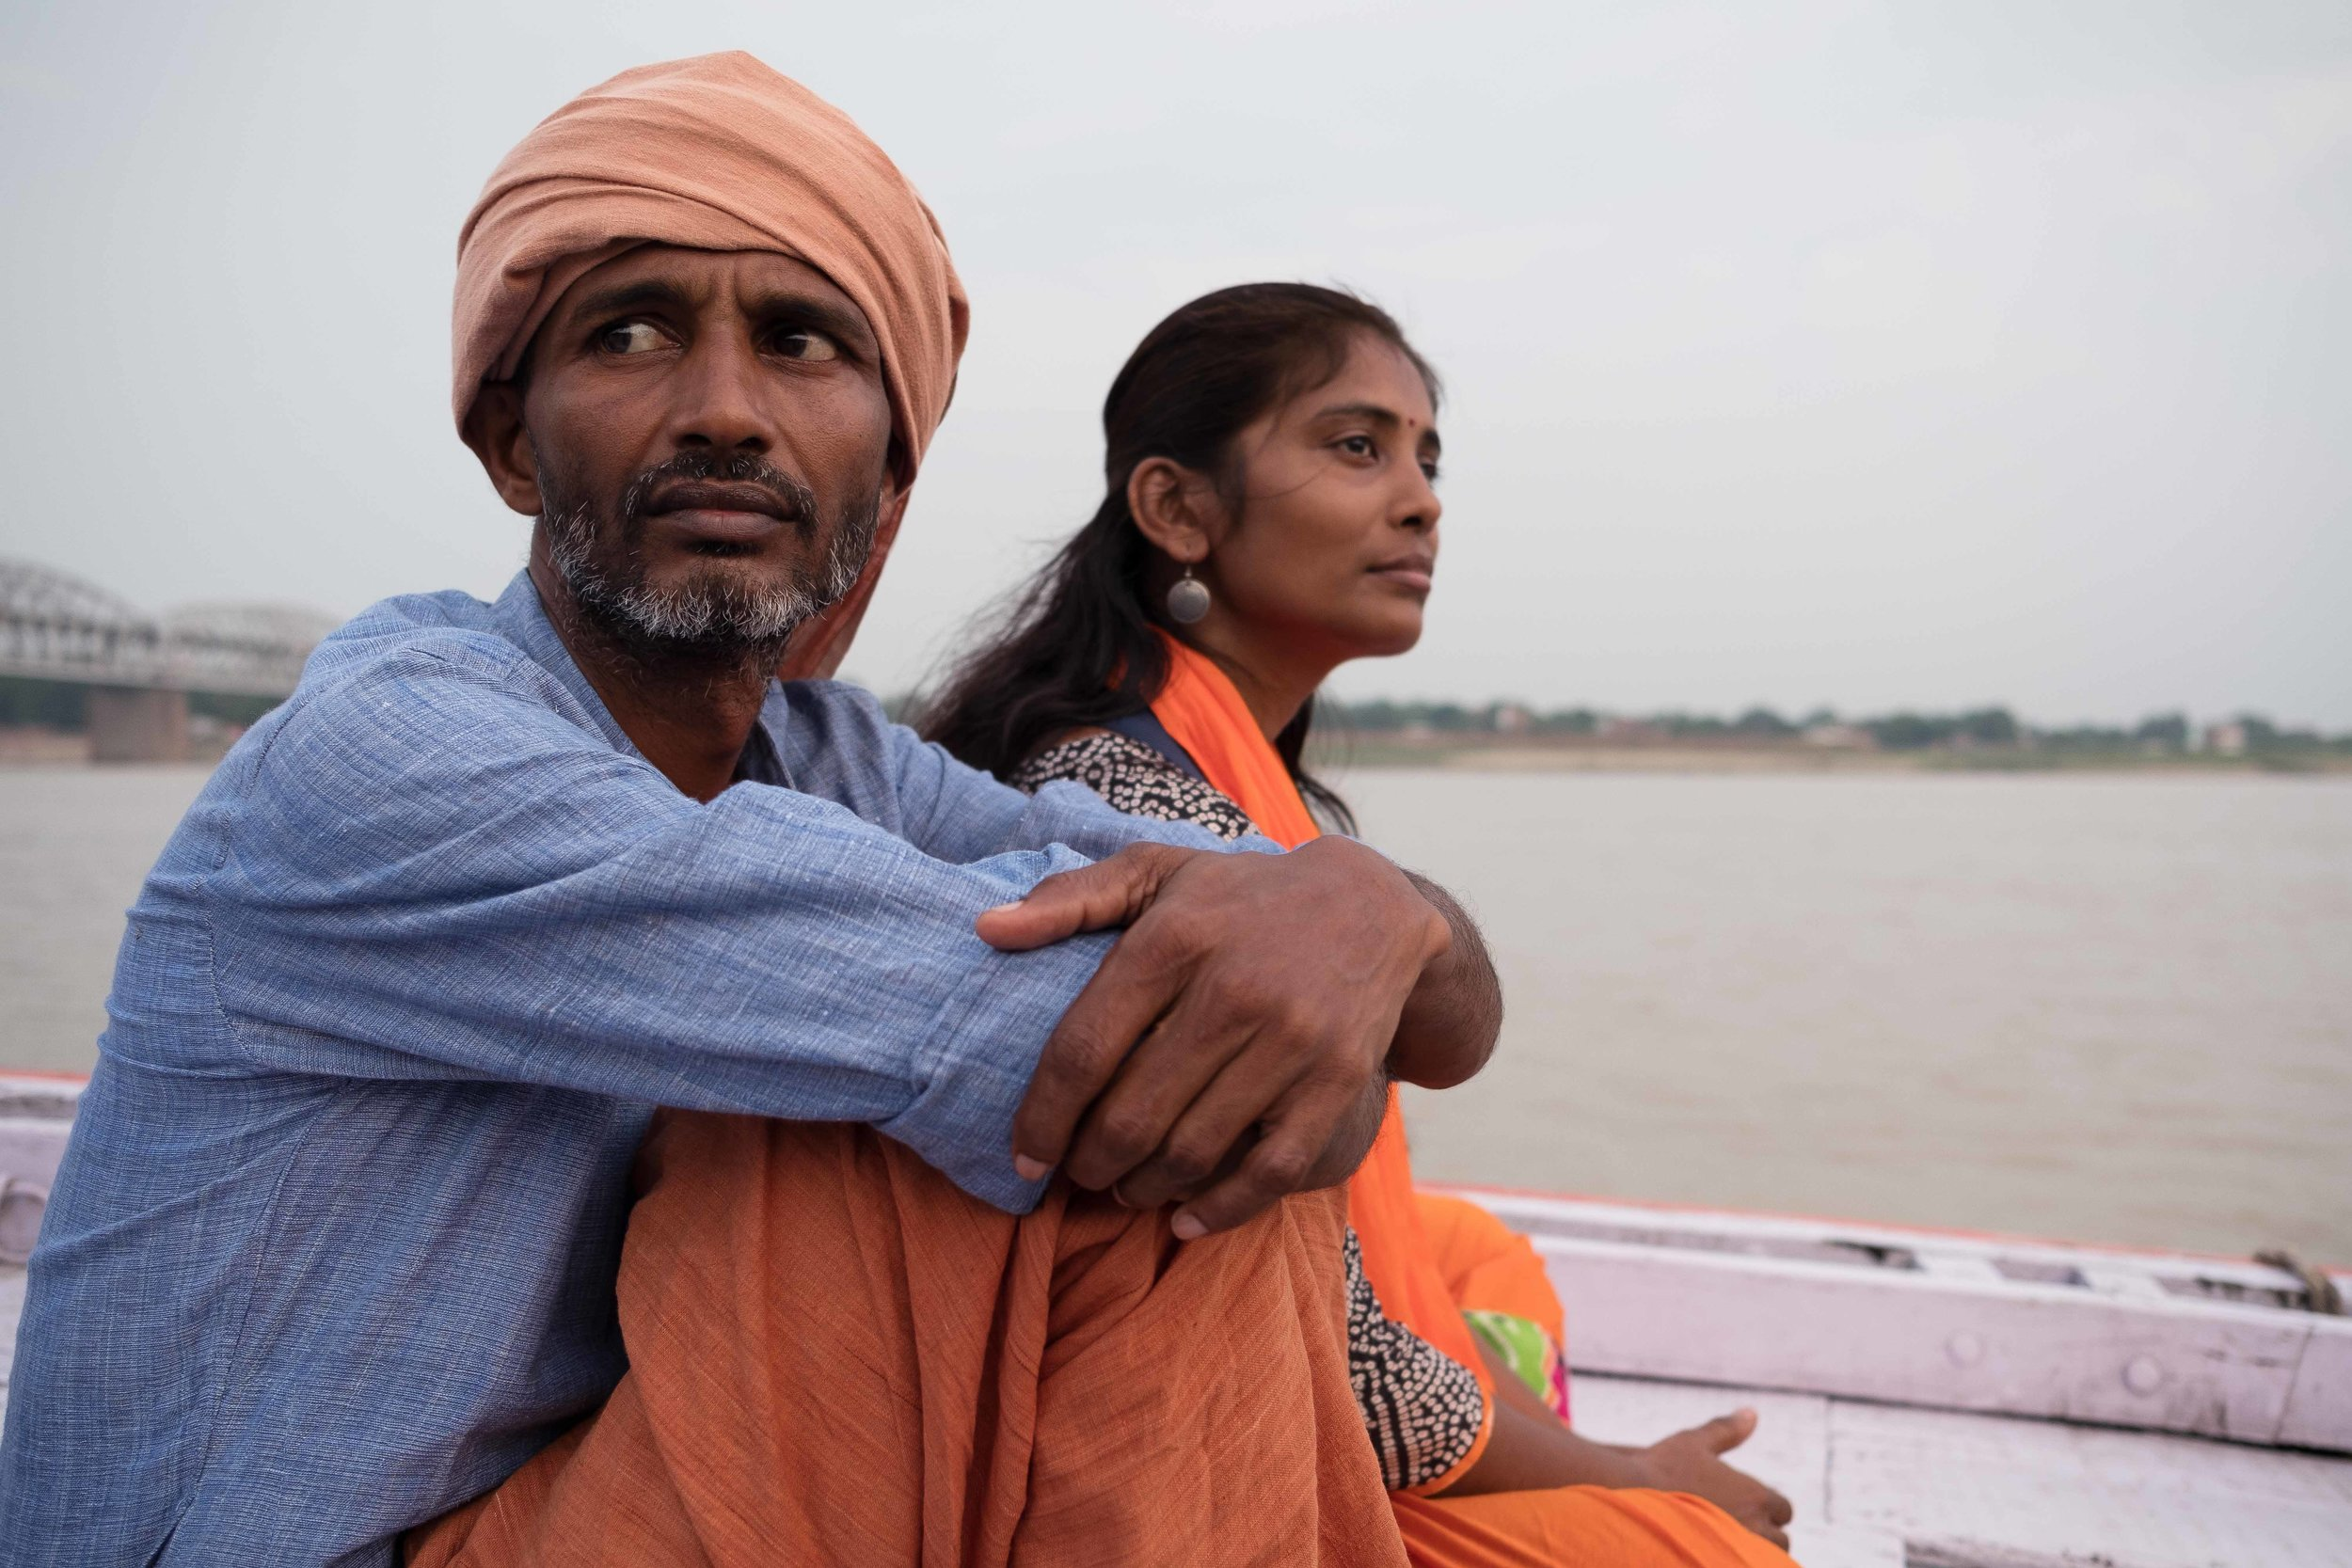 My friends Krishna and Beena, boat on the Ganga, Varanasi, India, 2018